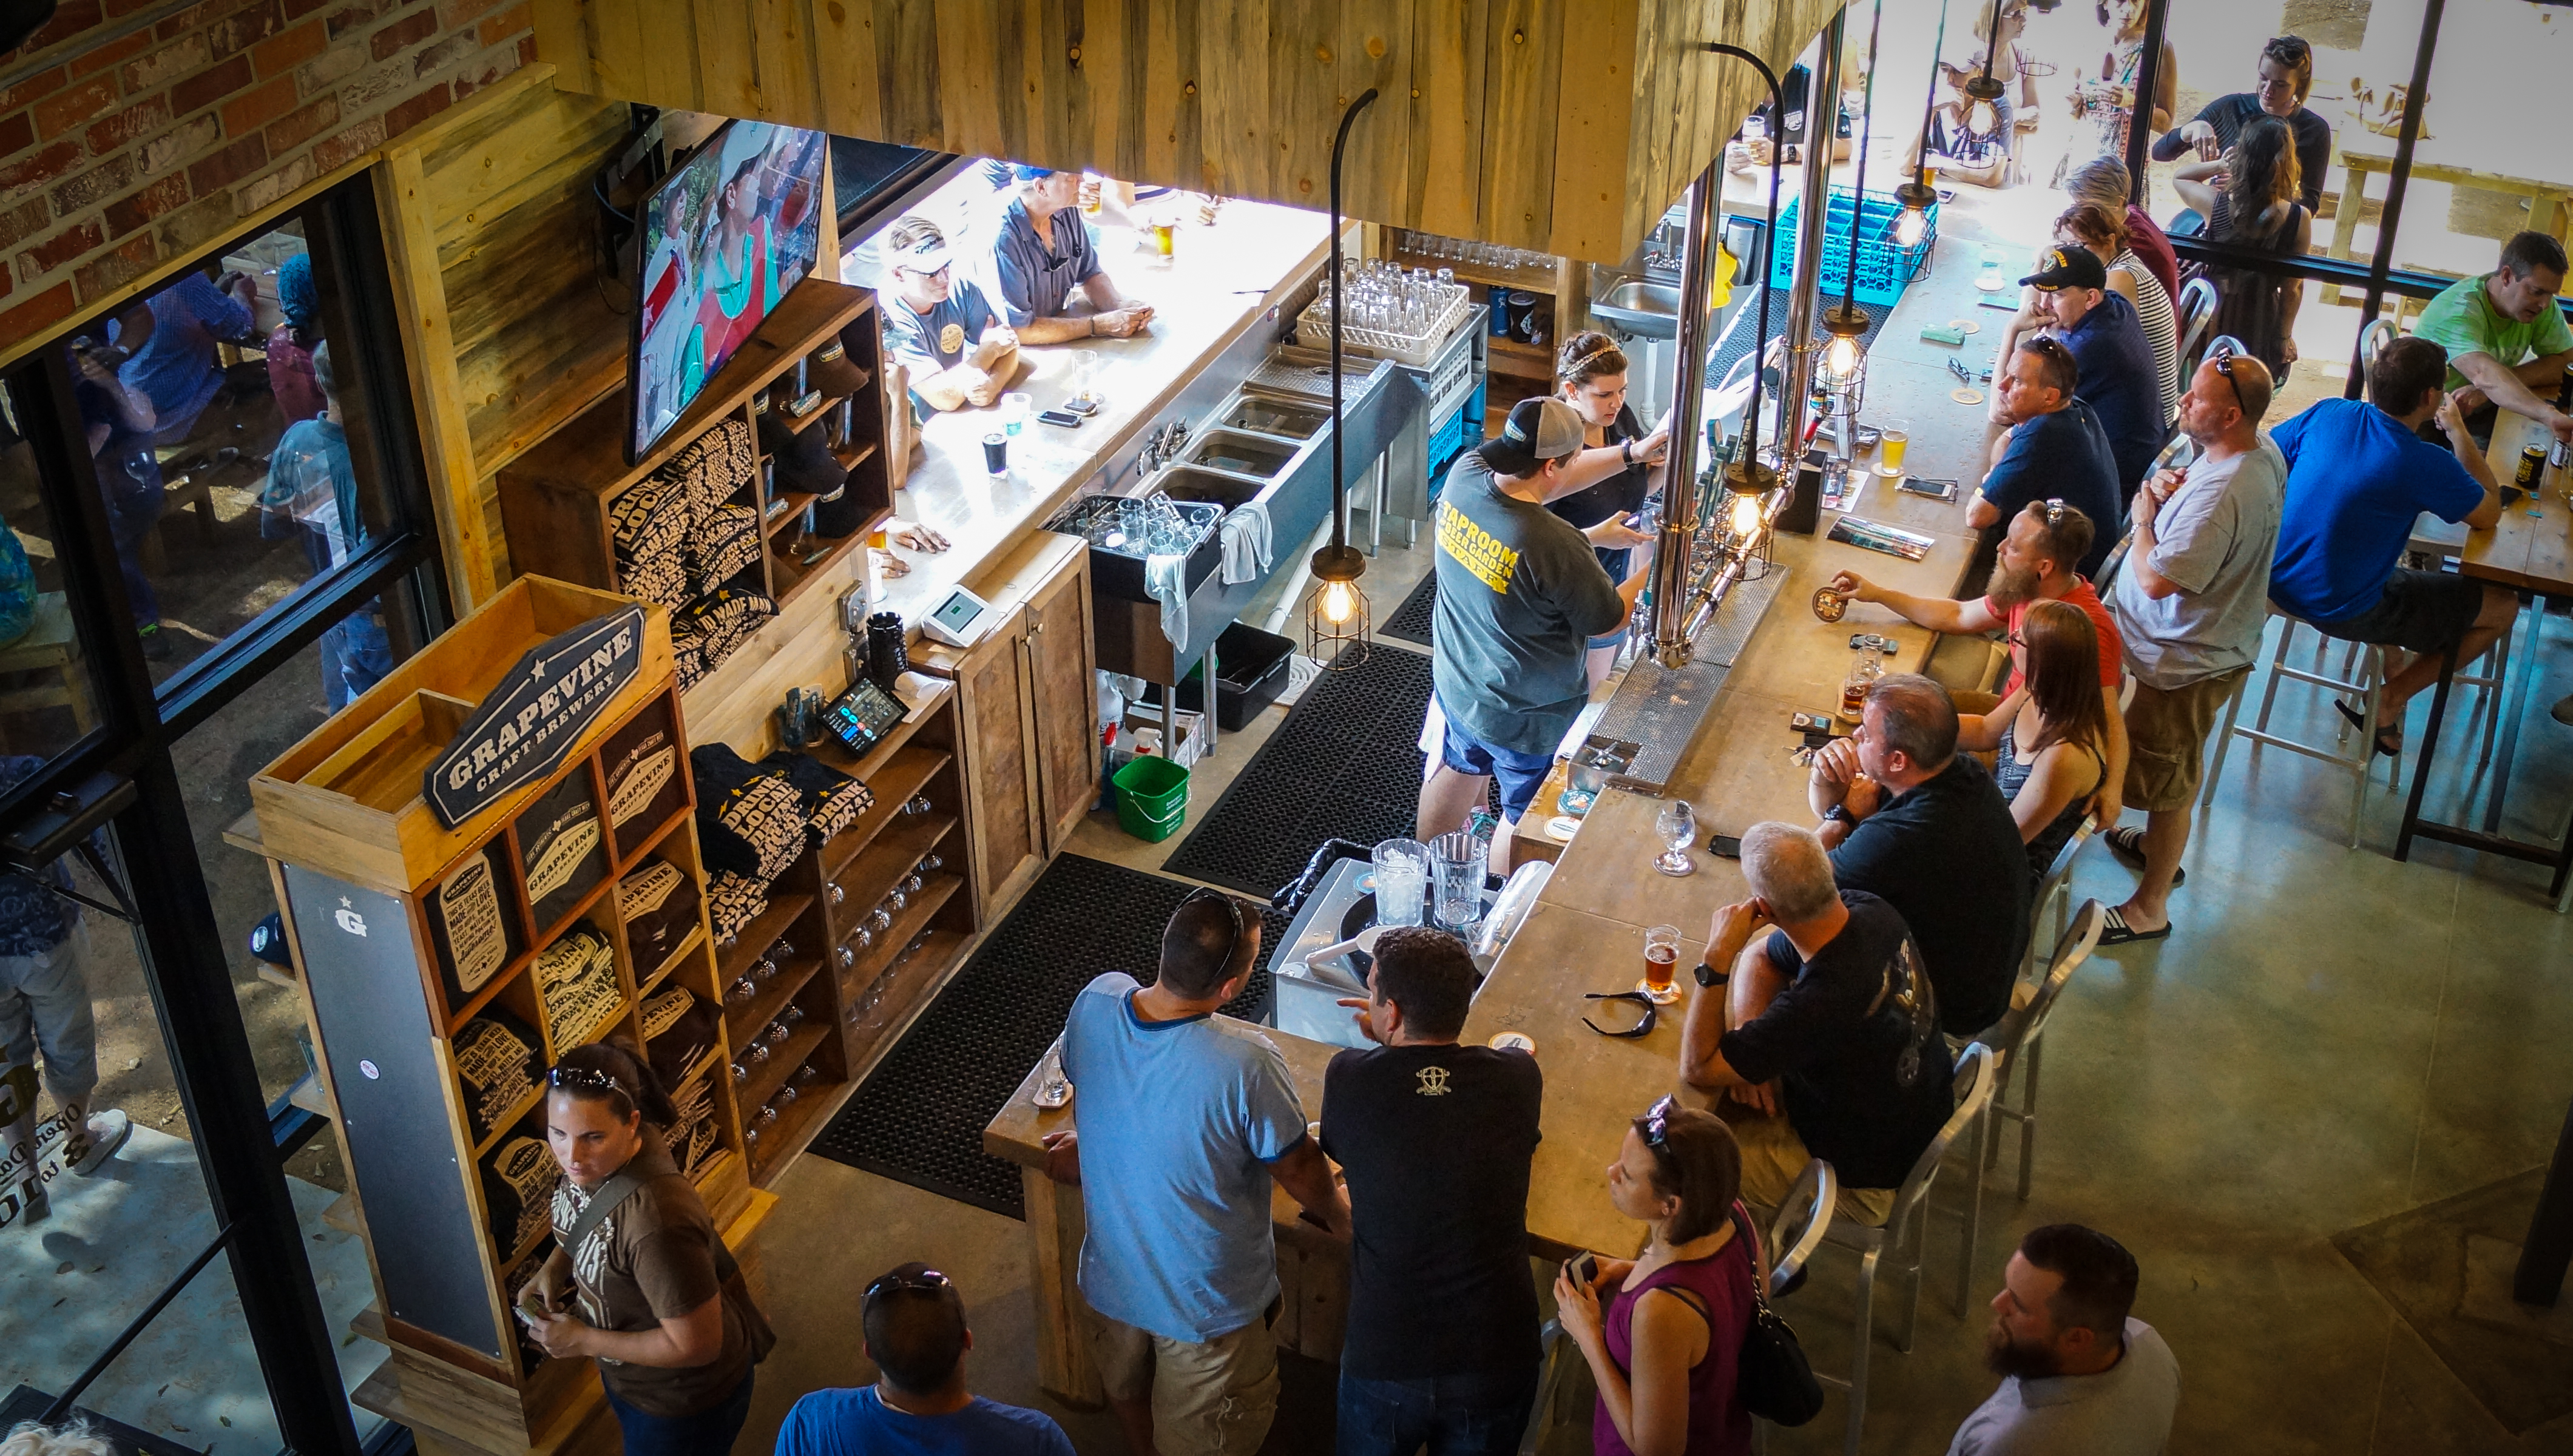 grapevine craft brewery features a two-story taproom